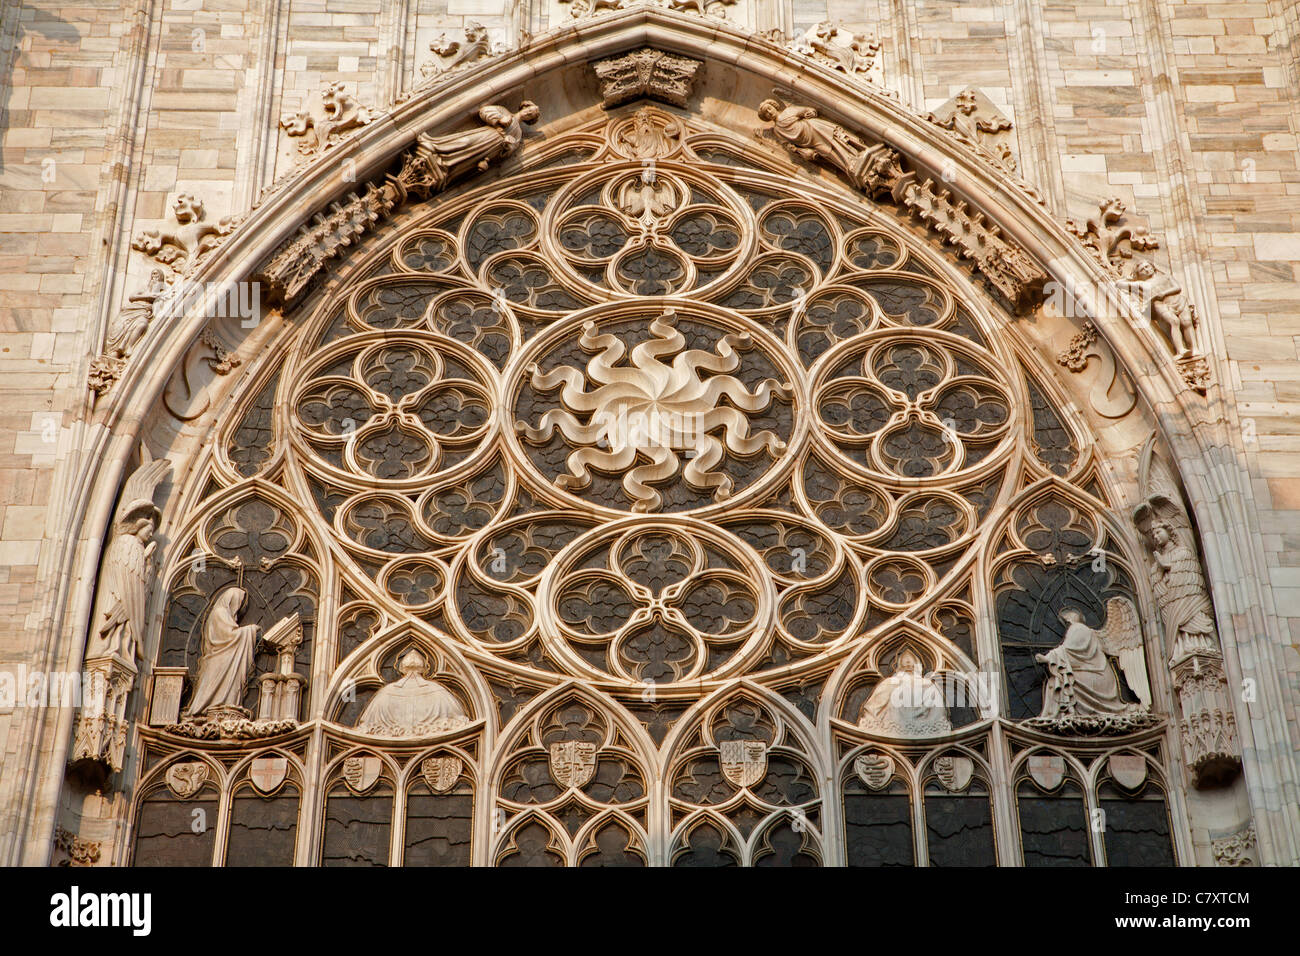 Milan - gothic rosette from Duomo cathedral - Stock Image